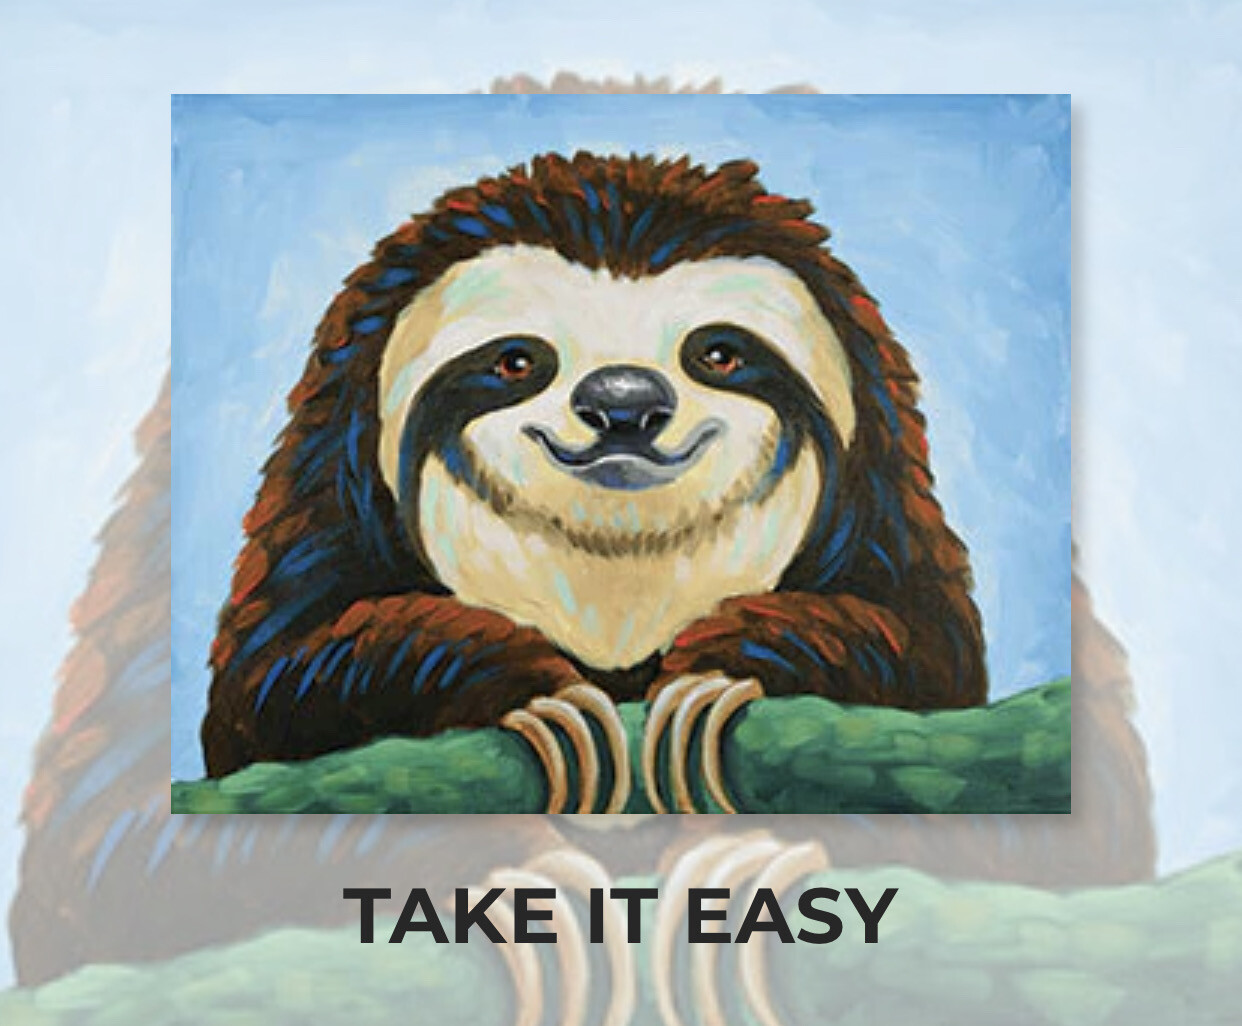 Take It Easy - Sloth ADULT Acrylic Paint On Canvas DIY Art Kit - 3 Week Special Order